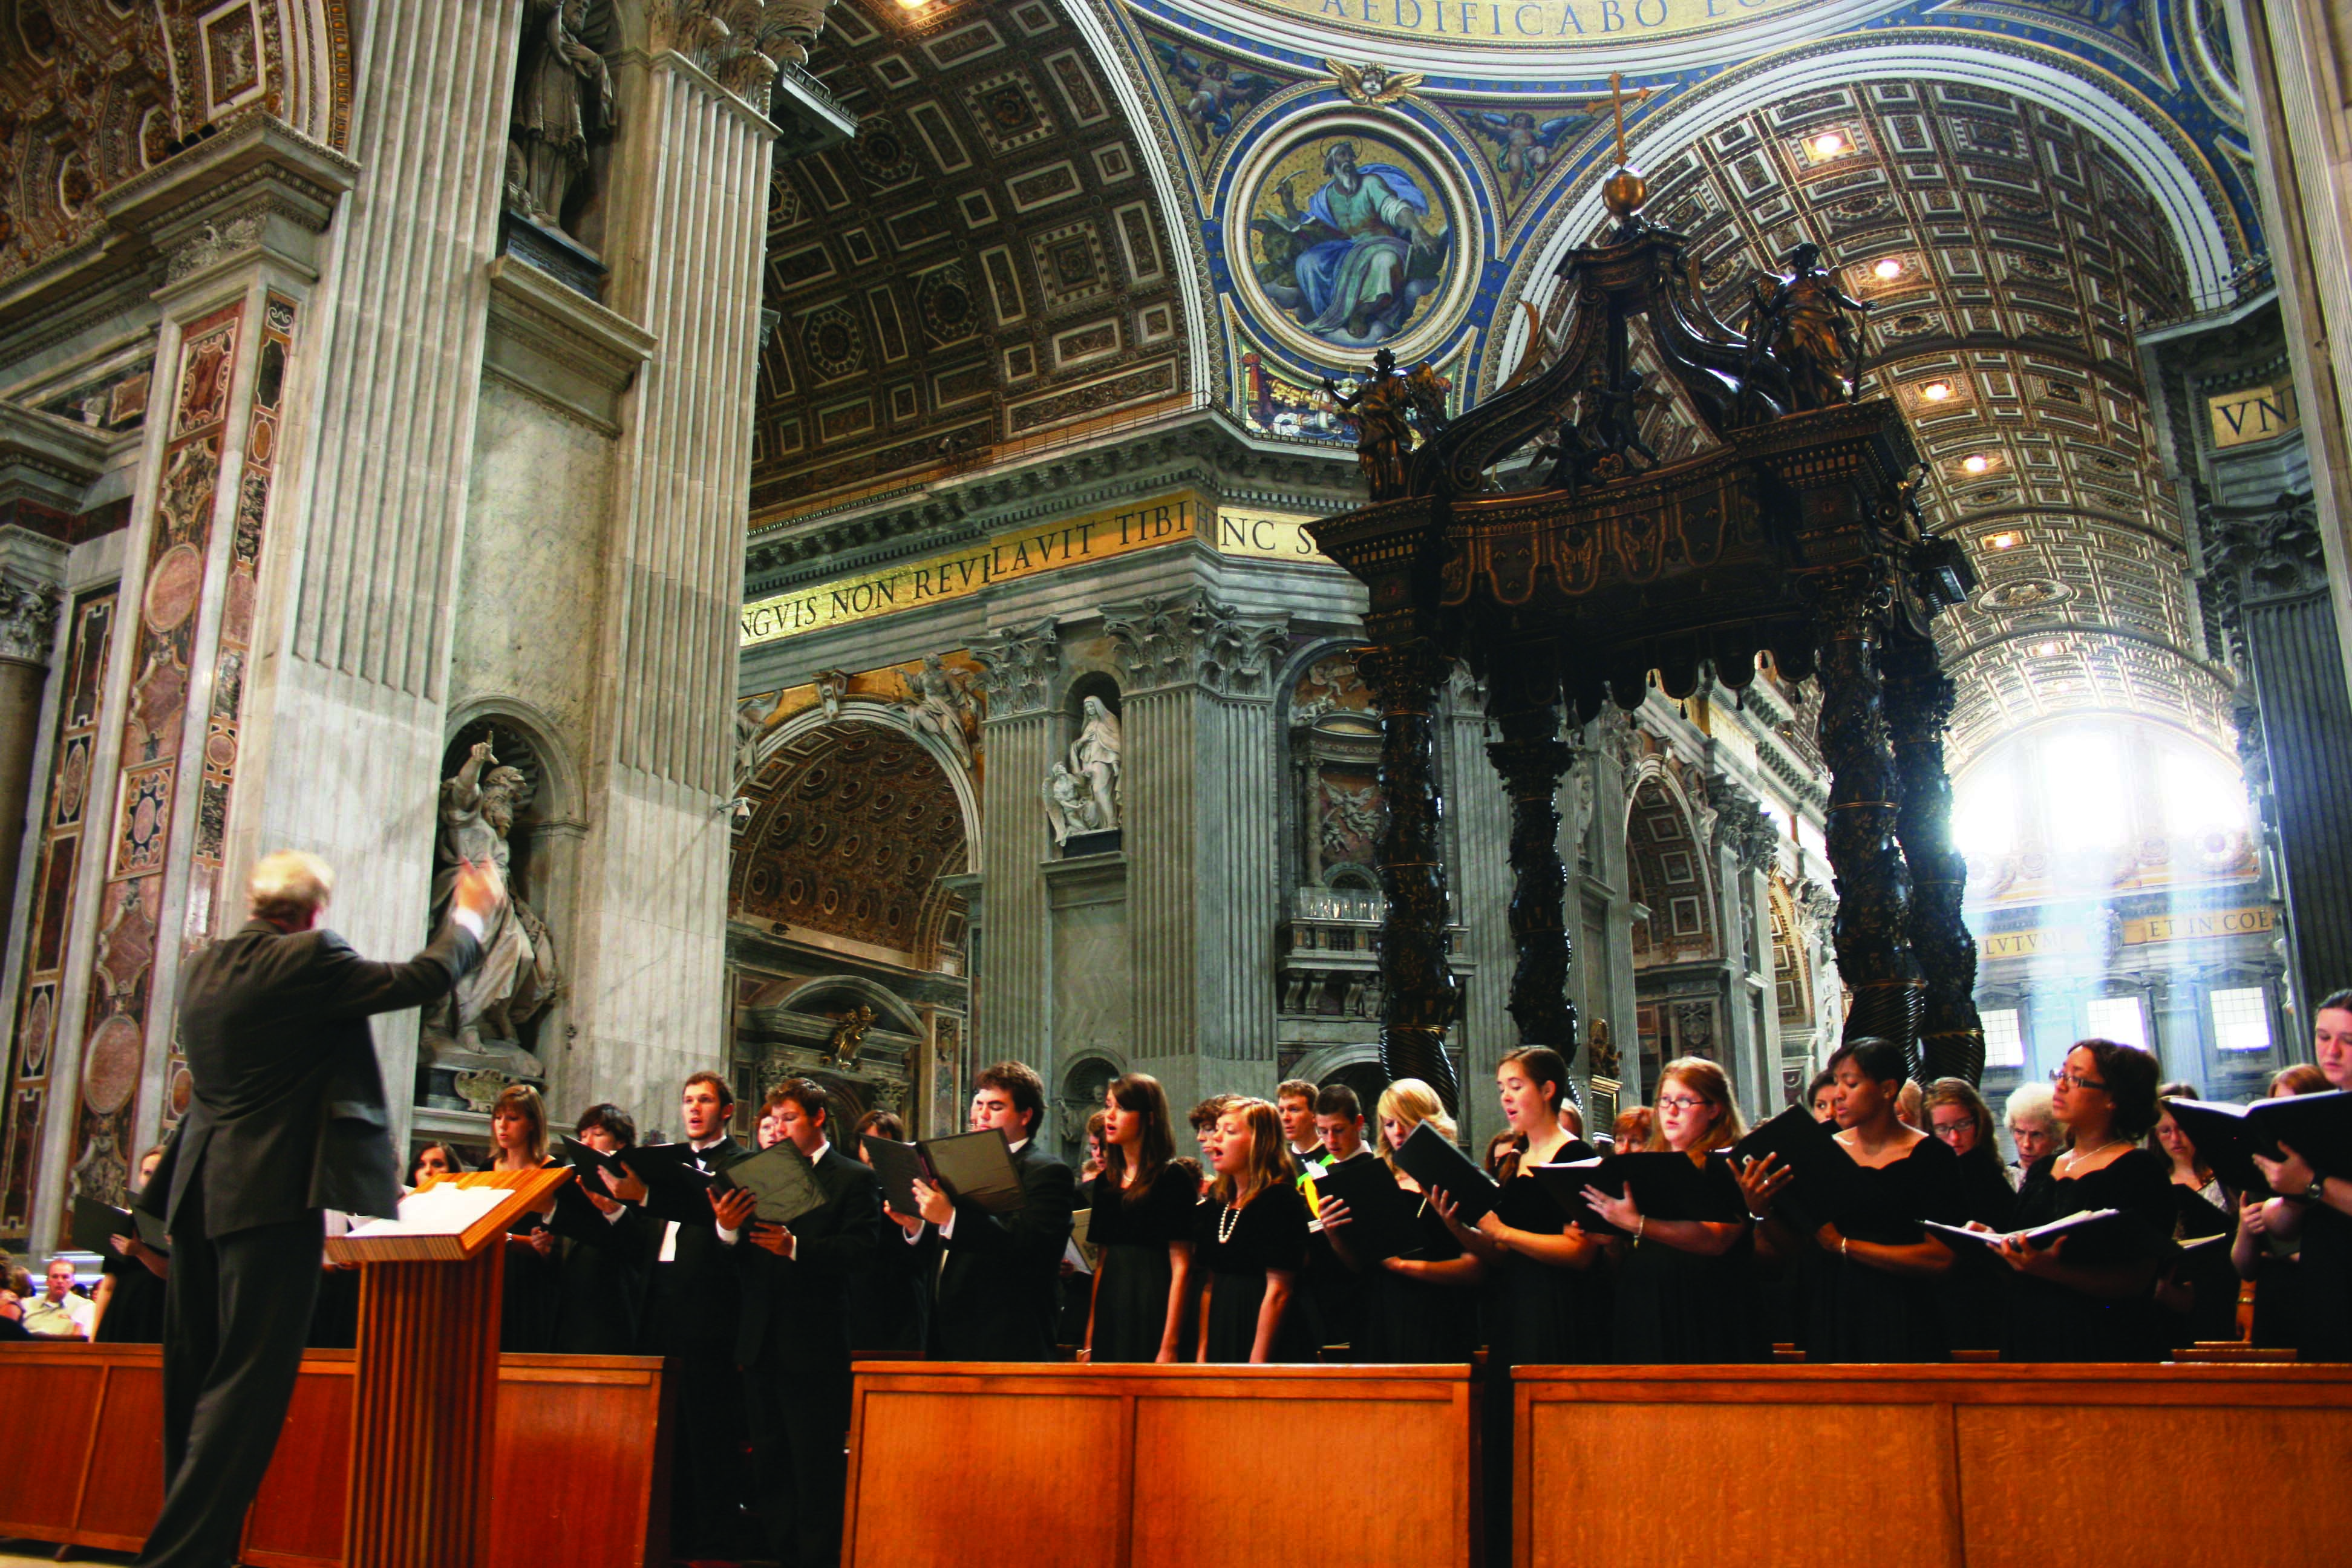 st-peters-basilica-stroope-choral-festival copy